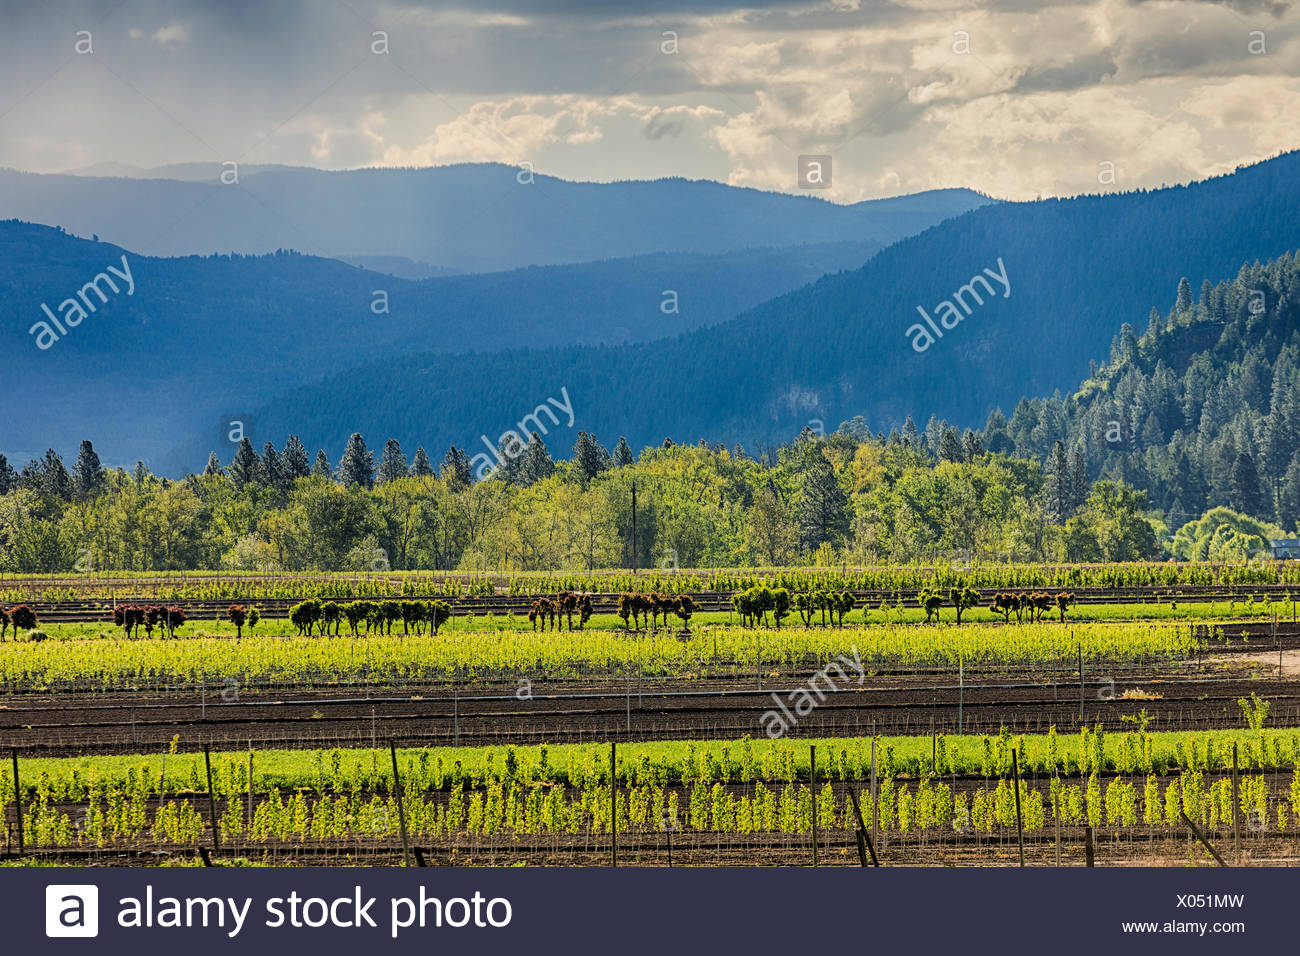 Advance Orchards near Grand Forks, British Columbia, Canada - Stock Image